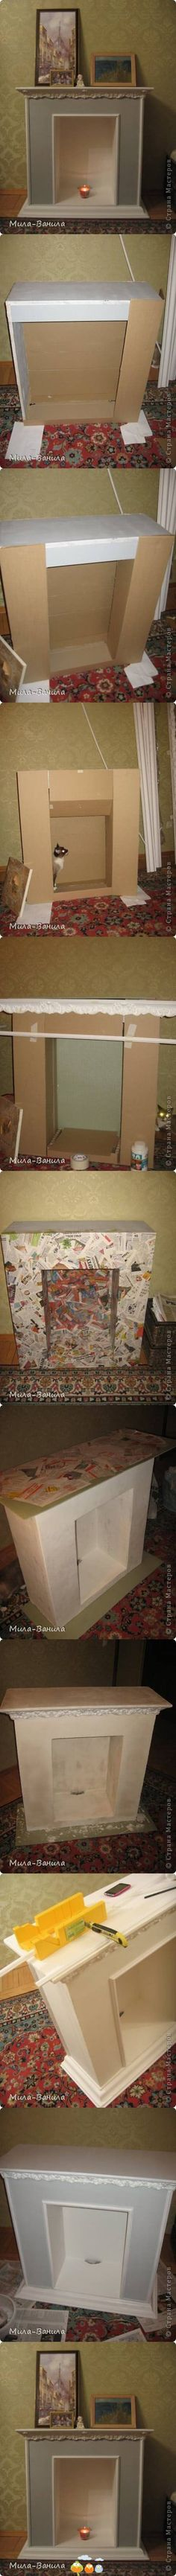 paper mache' fireplace, great for Christmas and hanging up stockings. Probably the easiest and simplest way to make a faux fireplace.